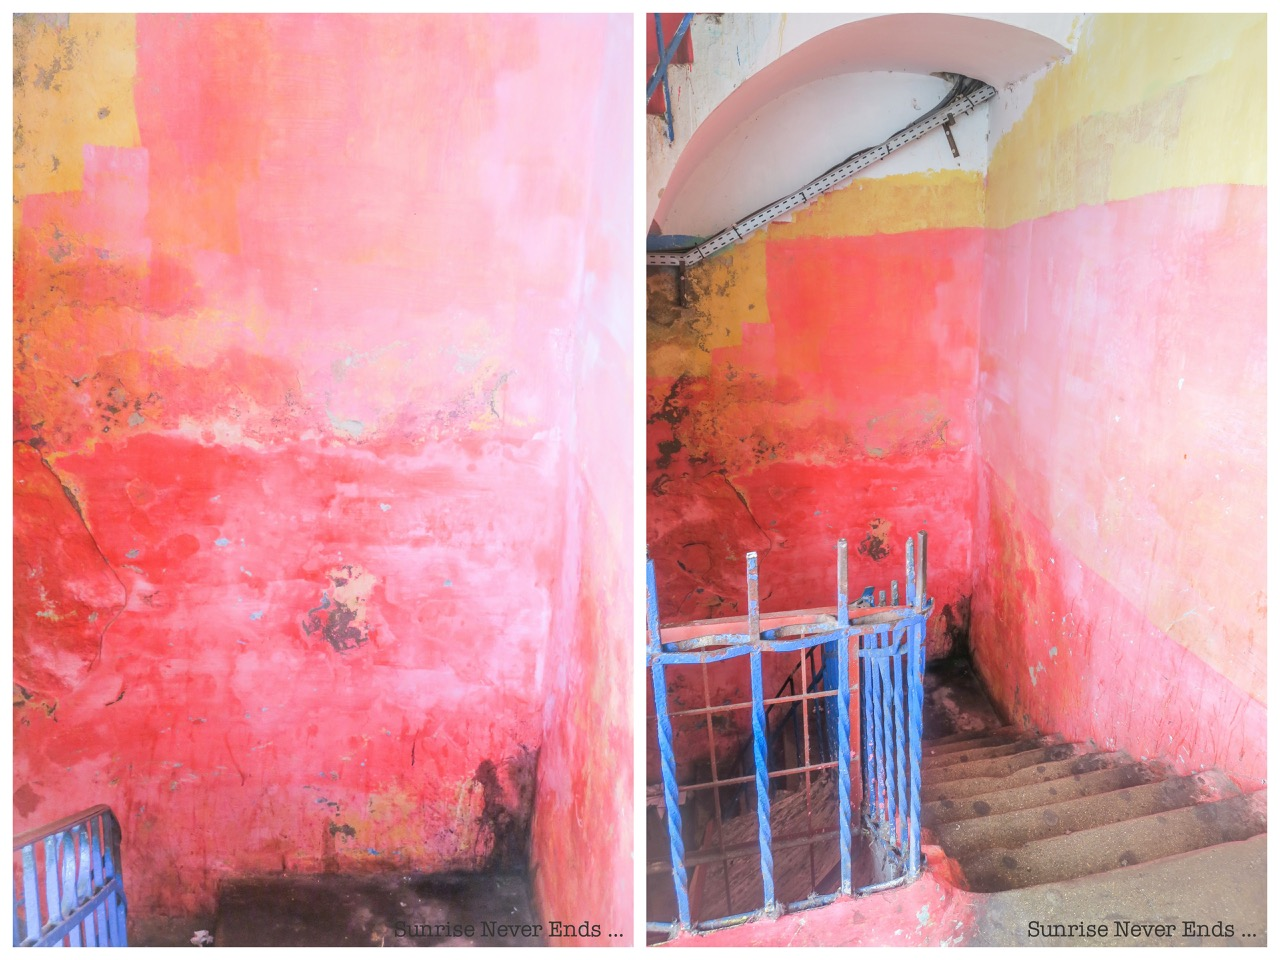 tanger,maroc,voyages,couleurs,inspiration,moodboard,colors,travel,médina